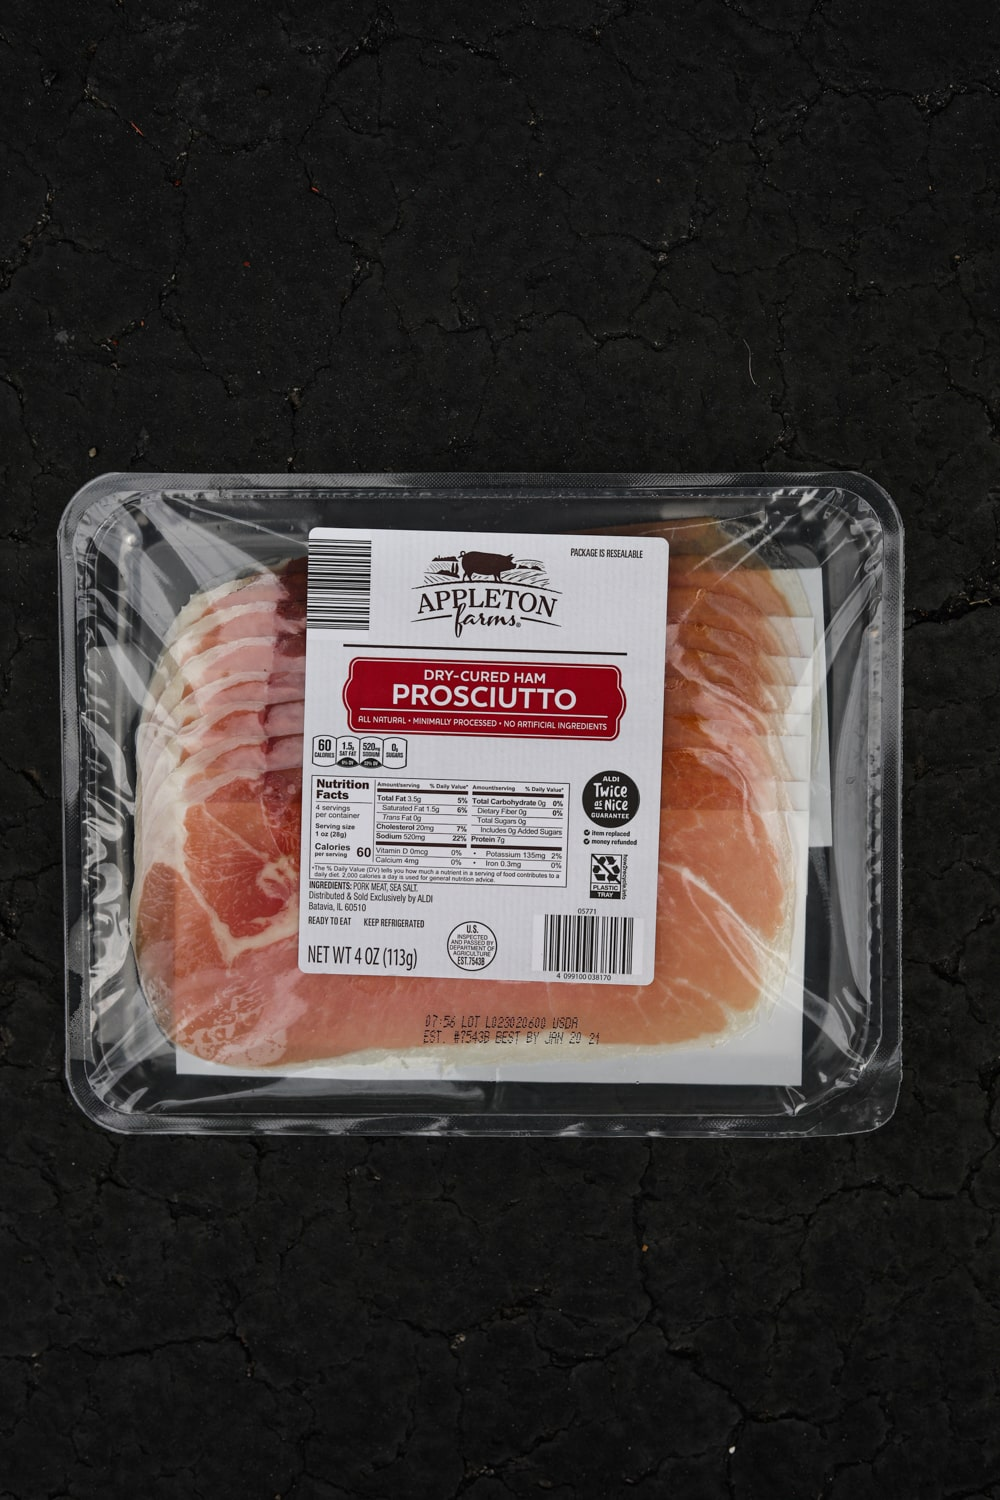 A package of prosciutto.